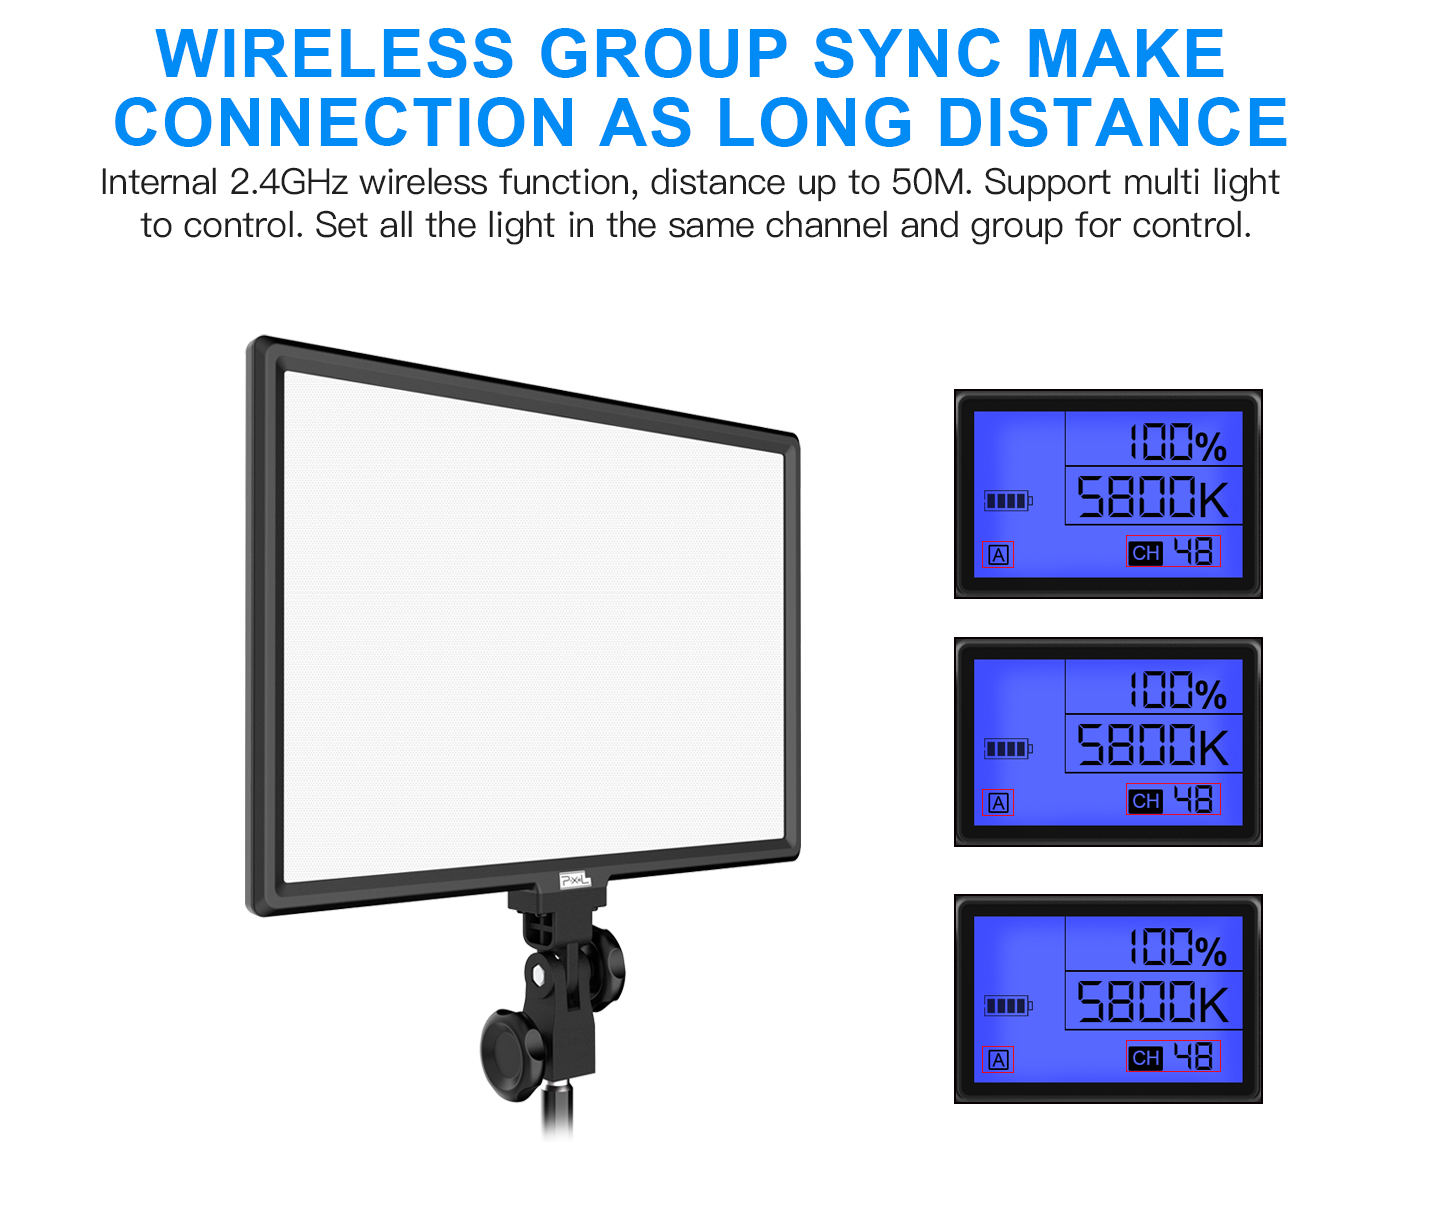 WIRELESS GROUP SYNC MAKE CONNECTION AS LONG DISANCE